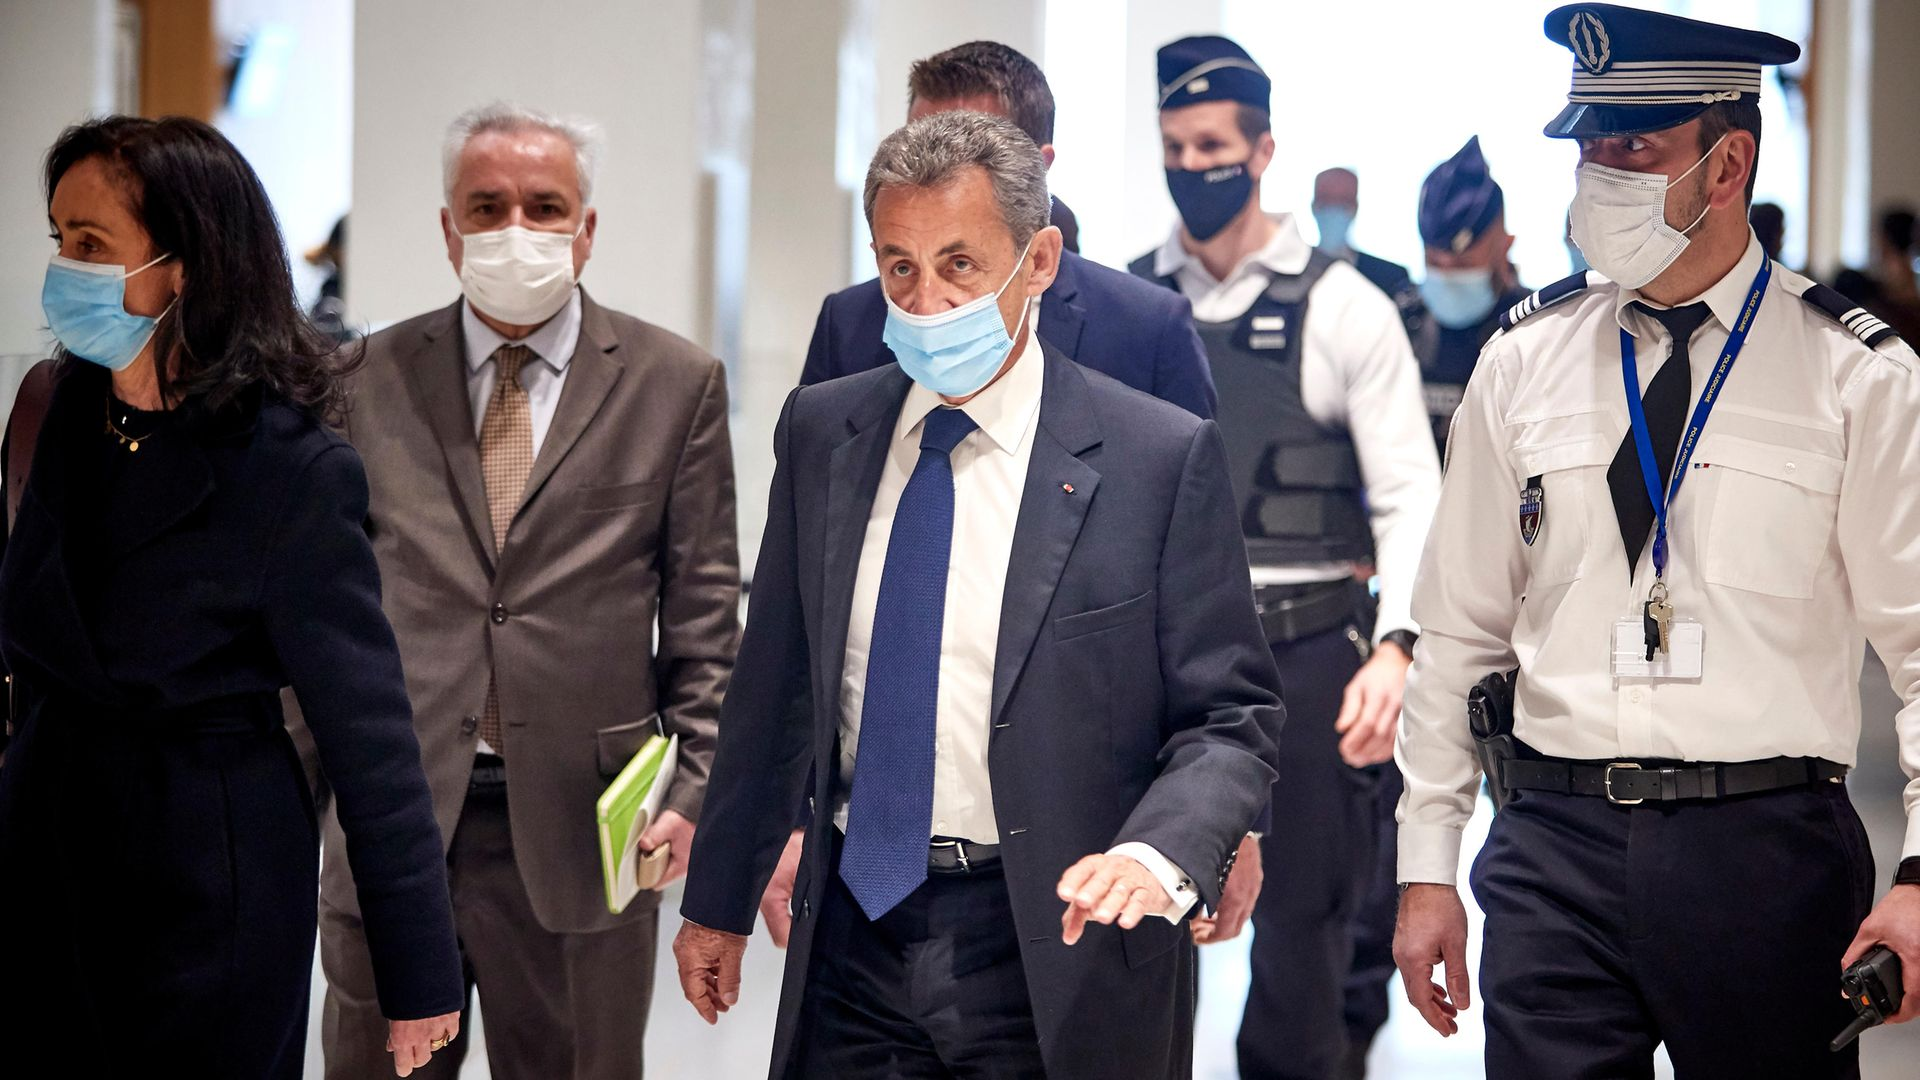 Former French President Nicolas Sarkozy arrives at court for the verdict of his trial for corruption and influence-peddling - Credit: Getty Images